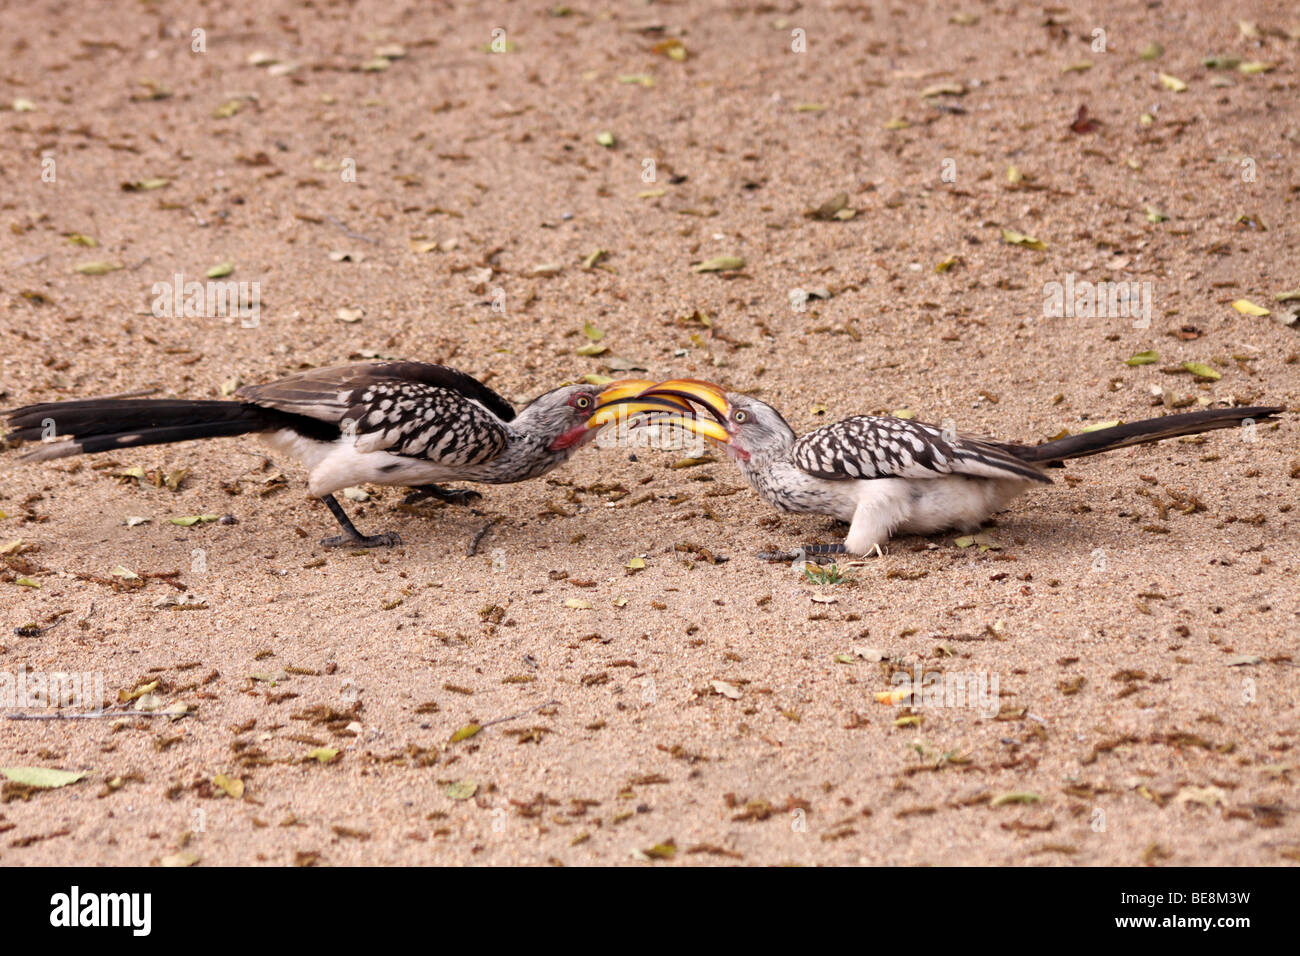 Two Southern Yellow-billed Hornbills Tockus leucomelas Fighting With Locked Beaks In Kruger National Park, South - Stock Image